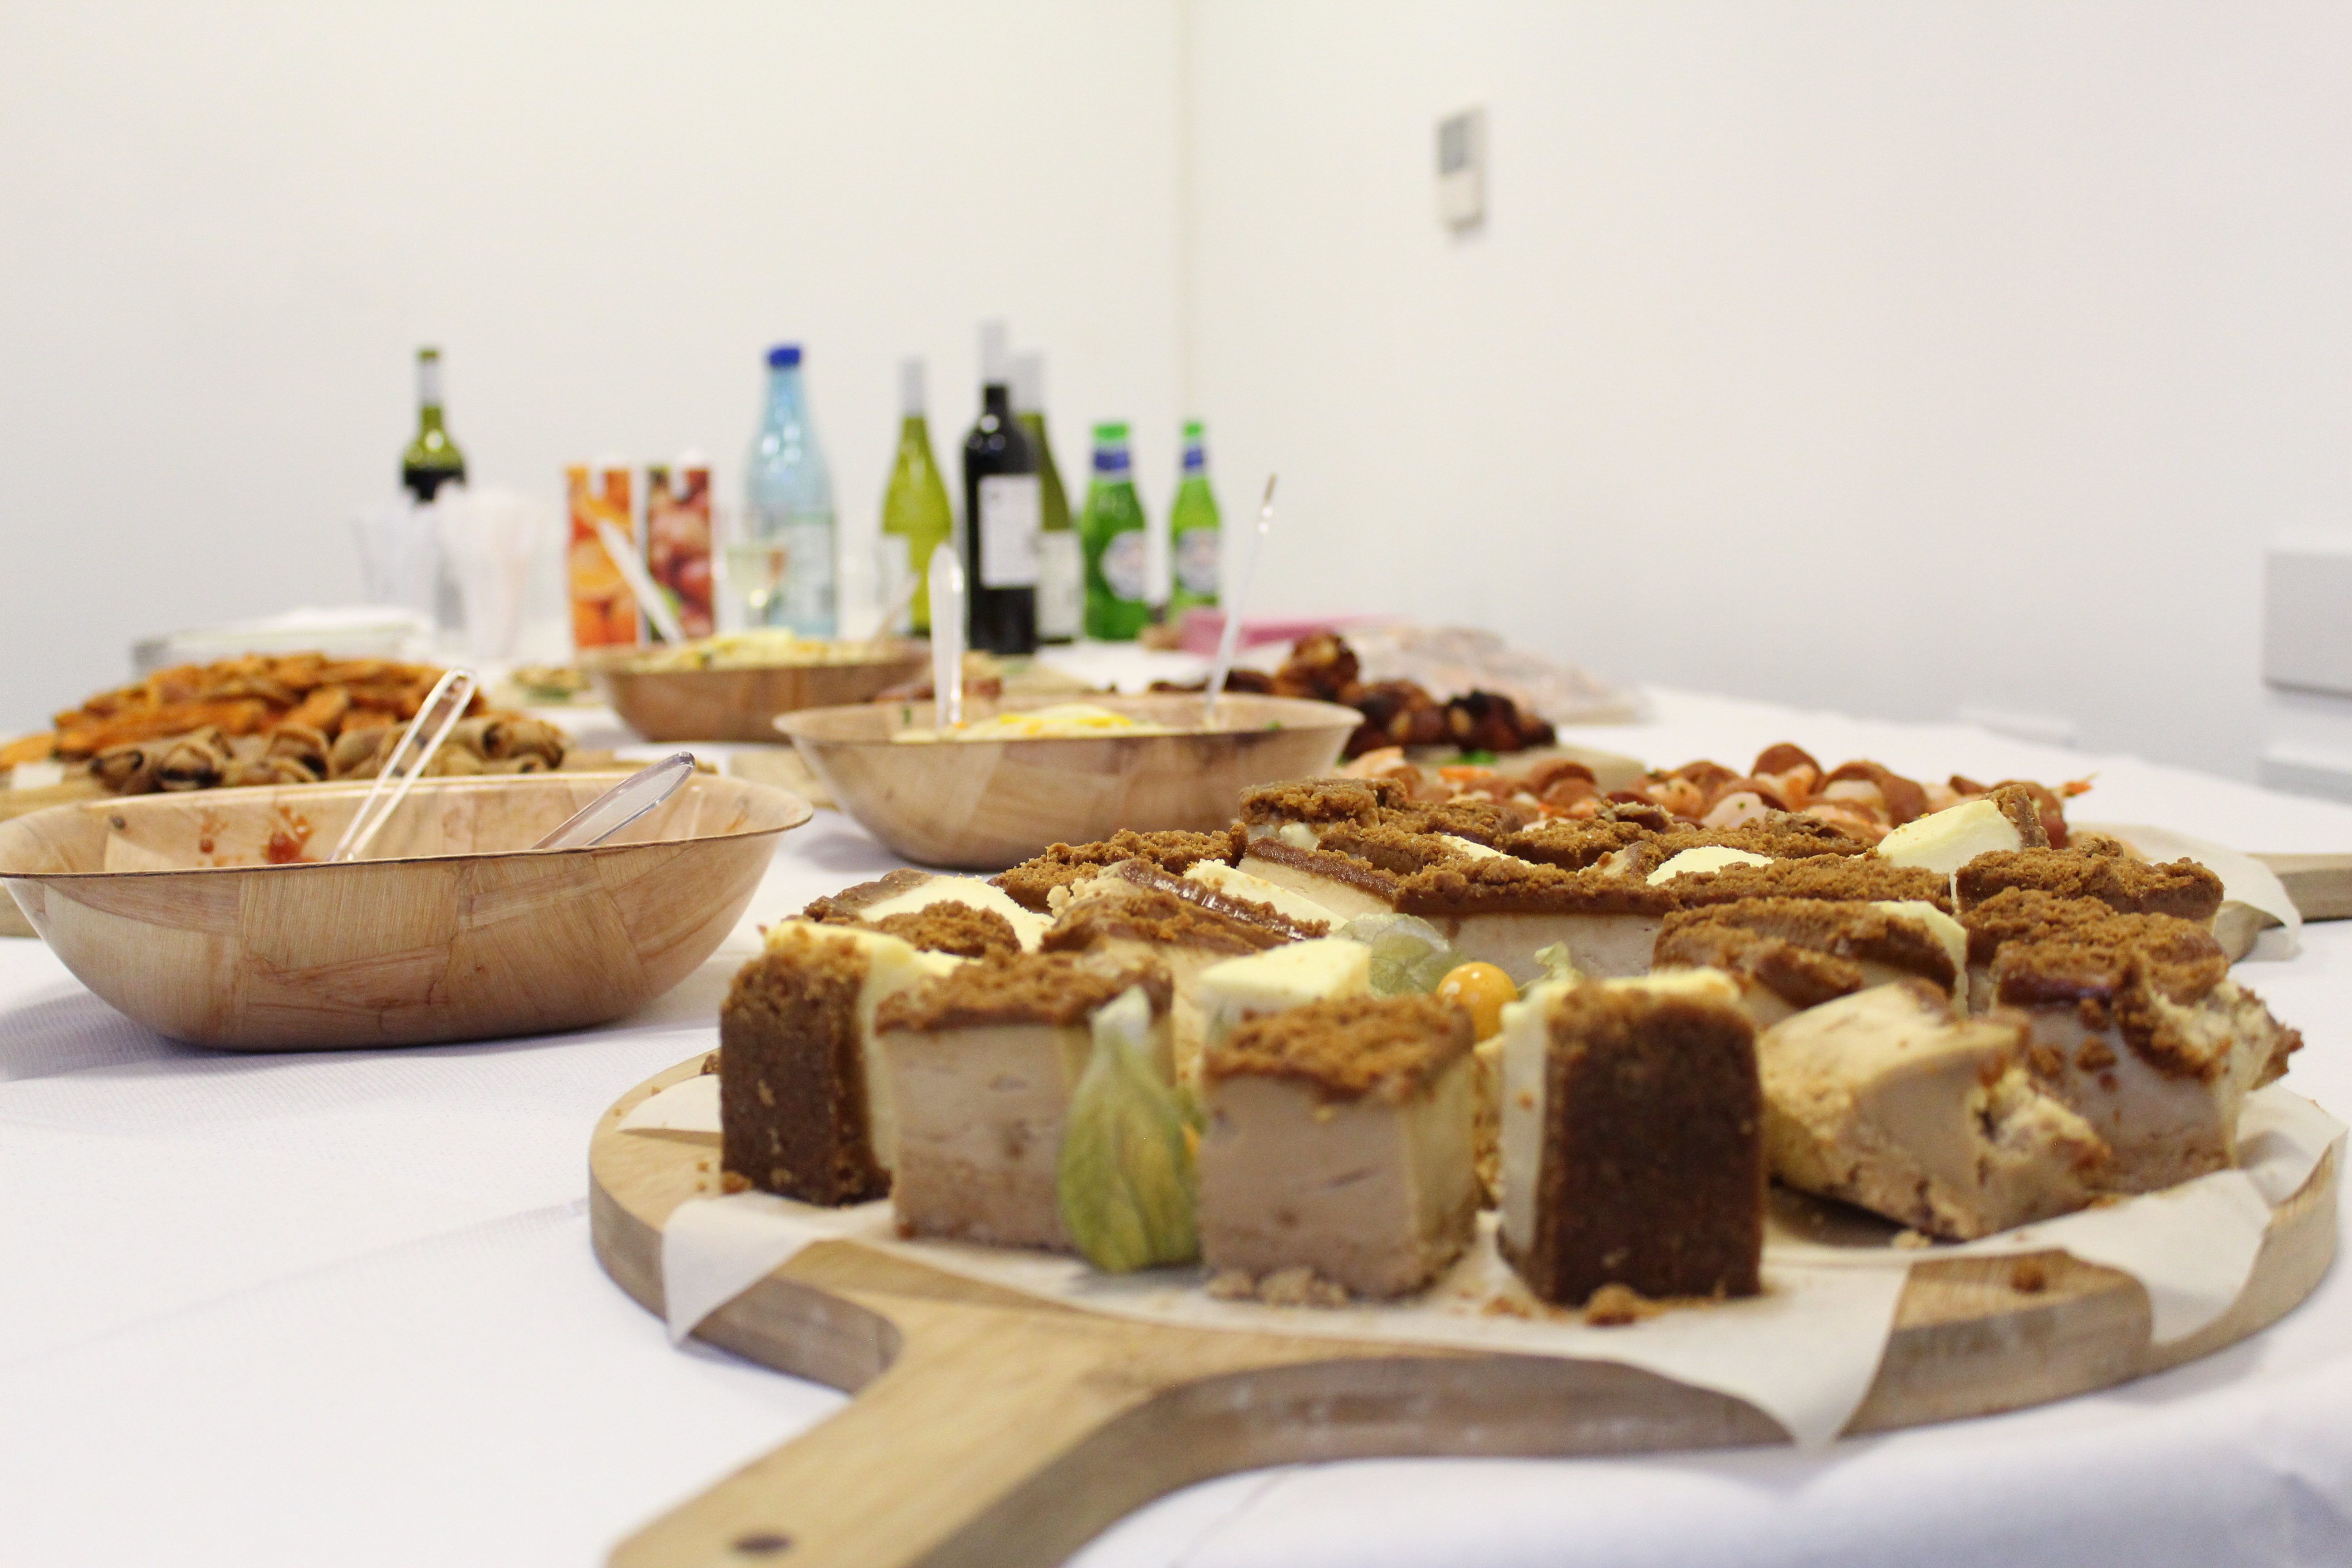 Food at the Sotic launch party